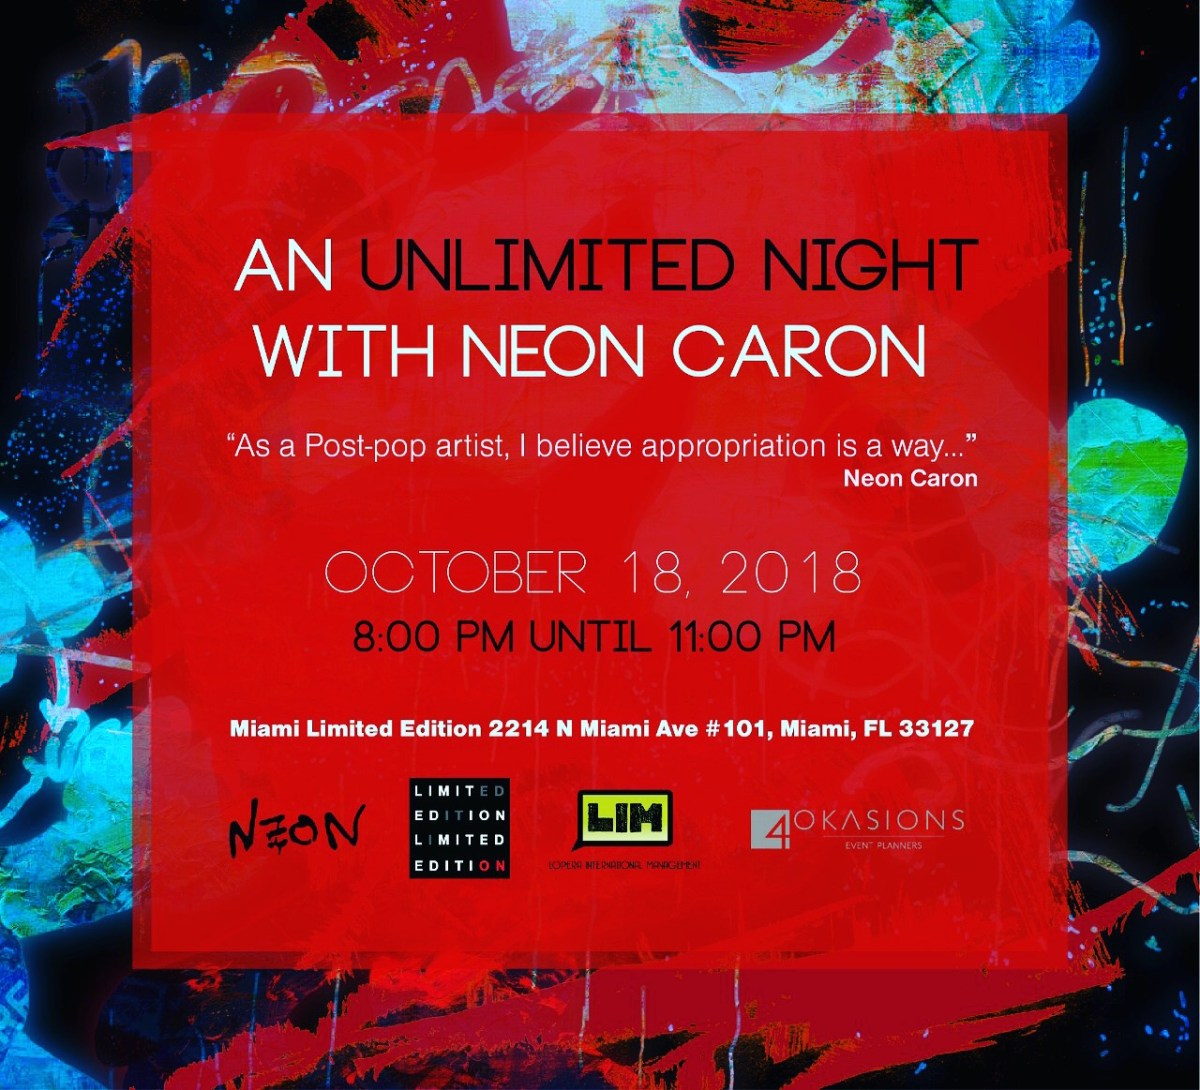 AN UNLIMITED NIGHT WITH NEON CARON